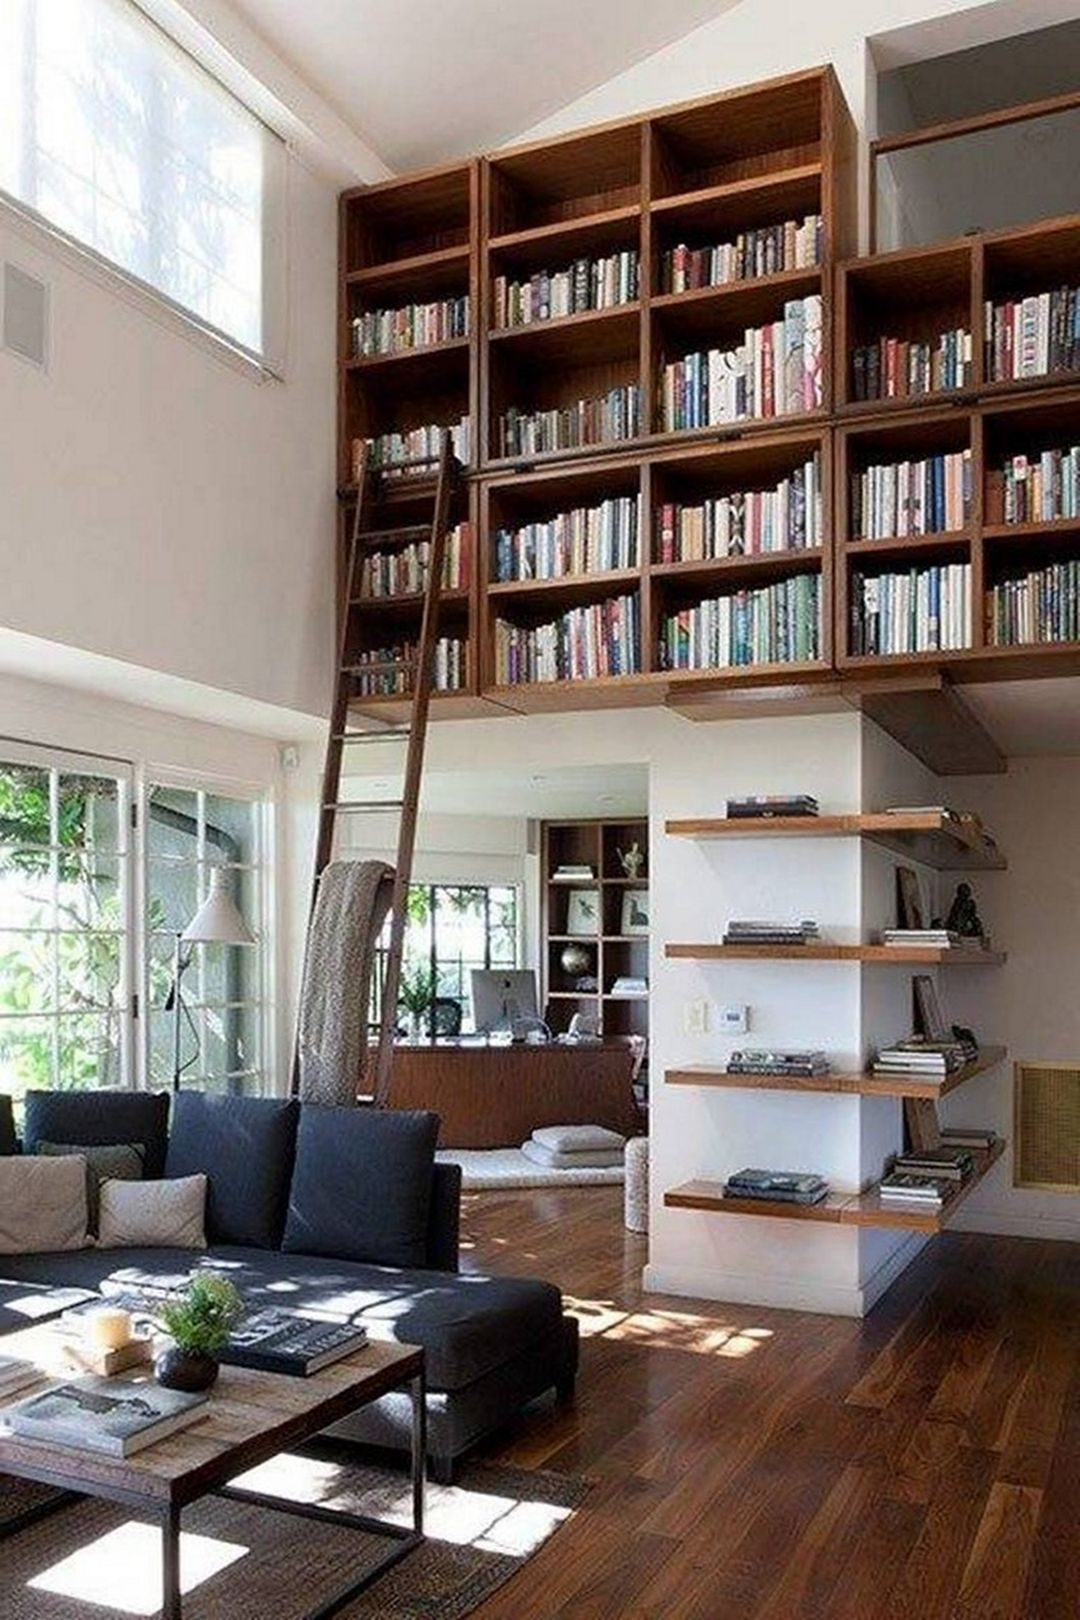 Home Library Furniture: Pin By Megan Virginia On Our Home